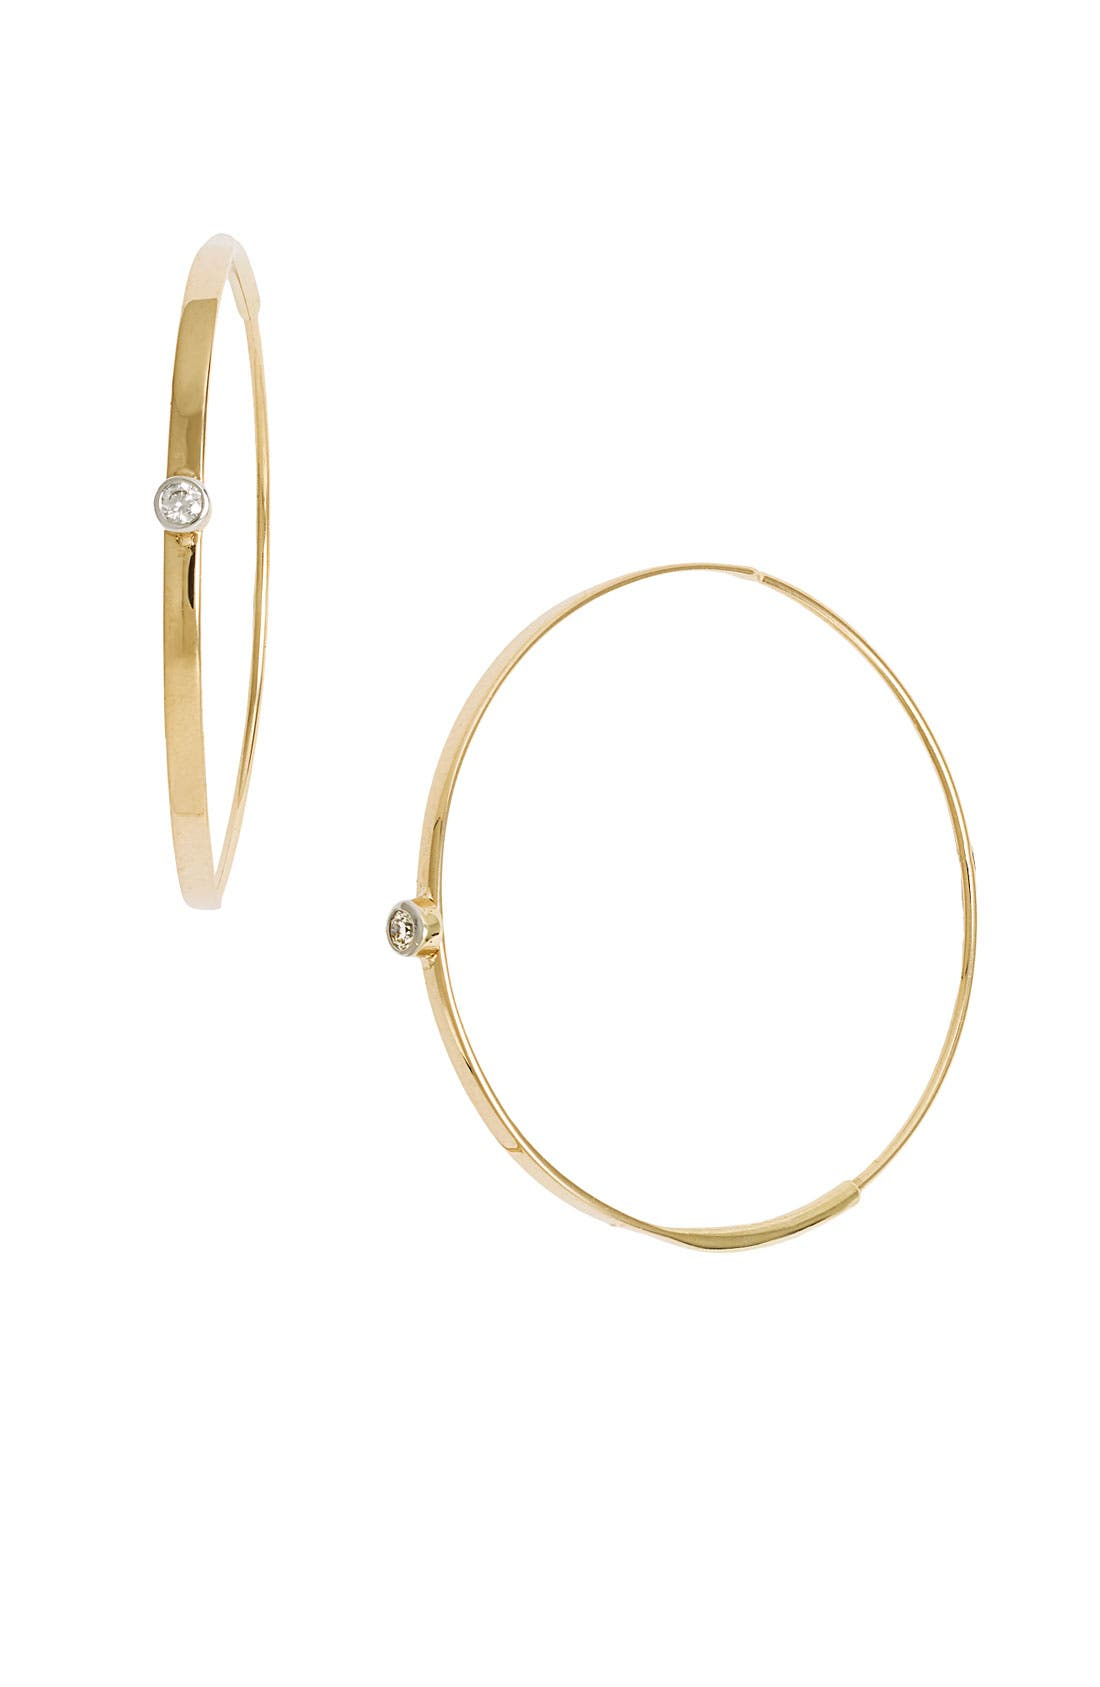 Main Image - Lana Jewelry 'Small Flat Magic' Diamond Hoop Earrings